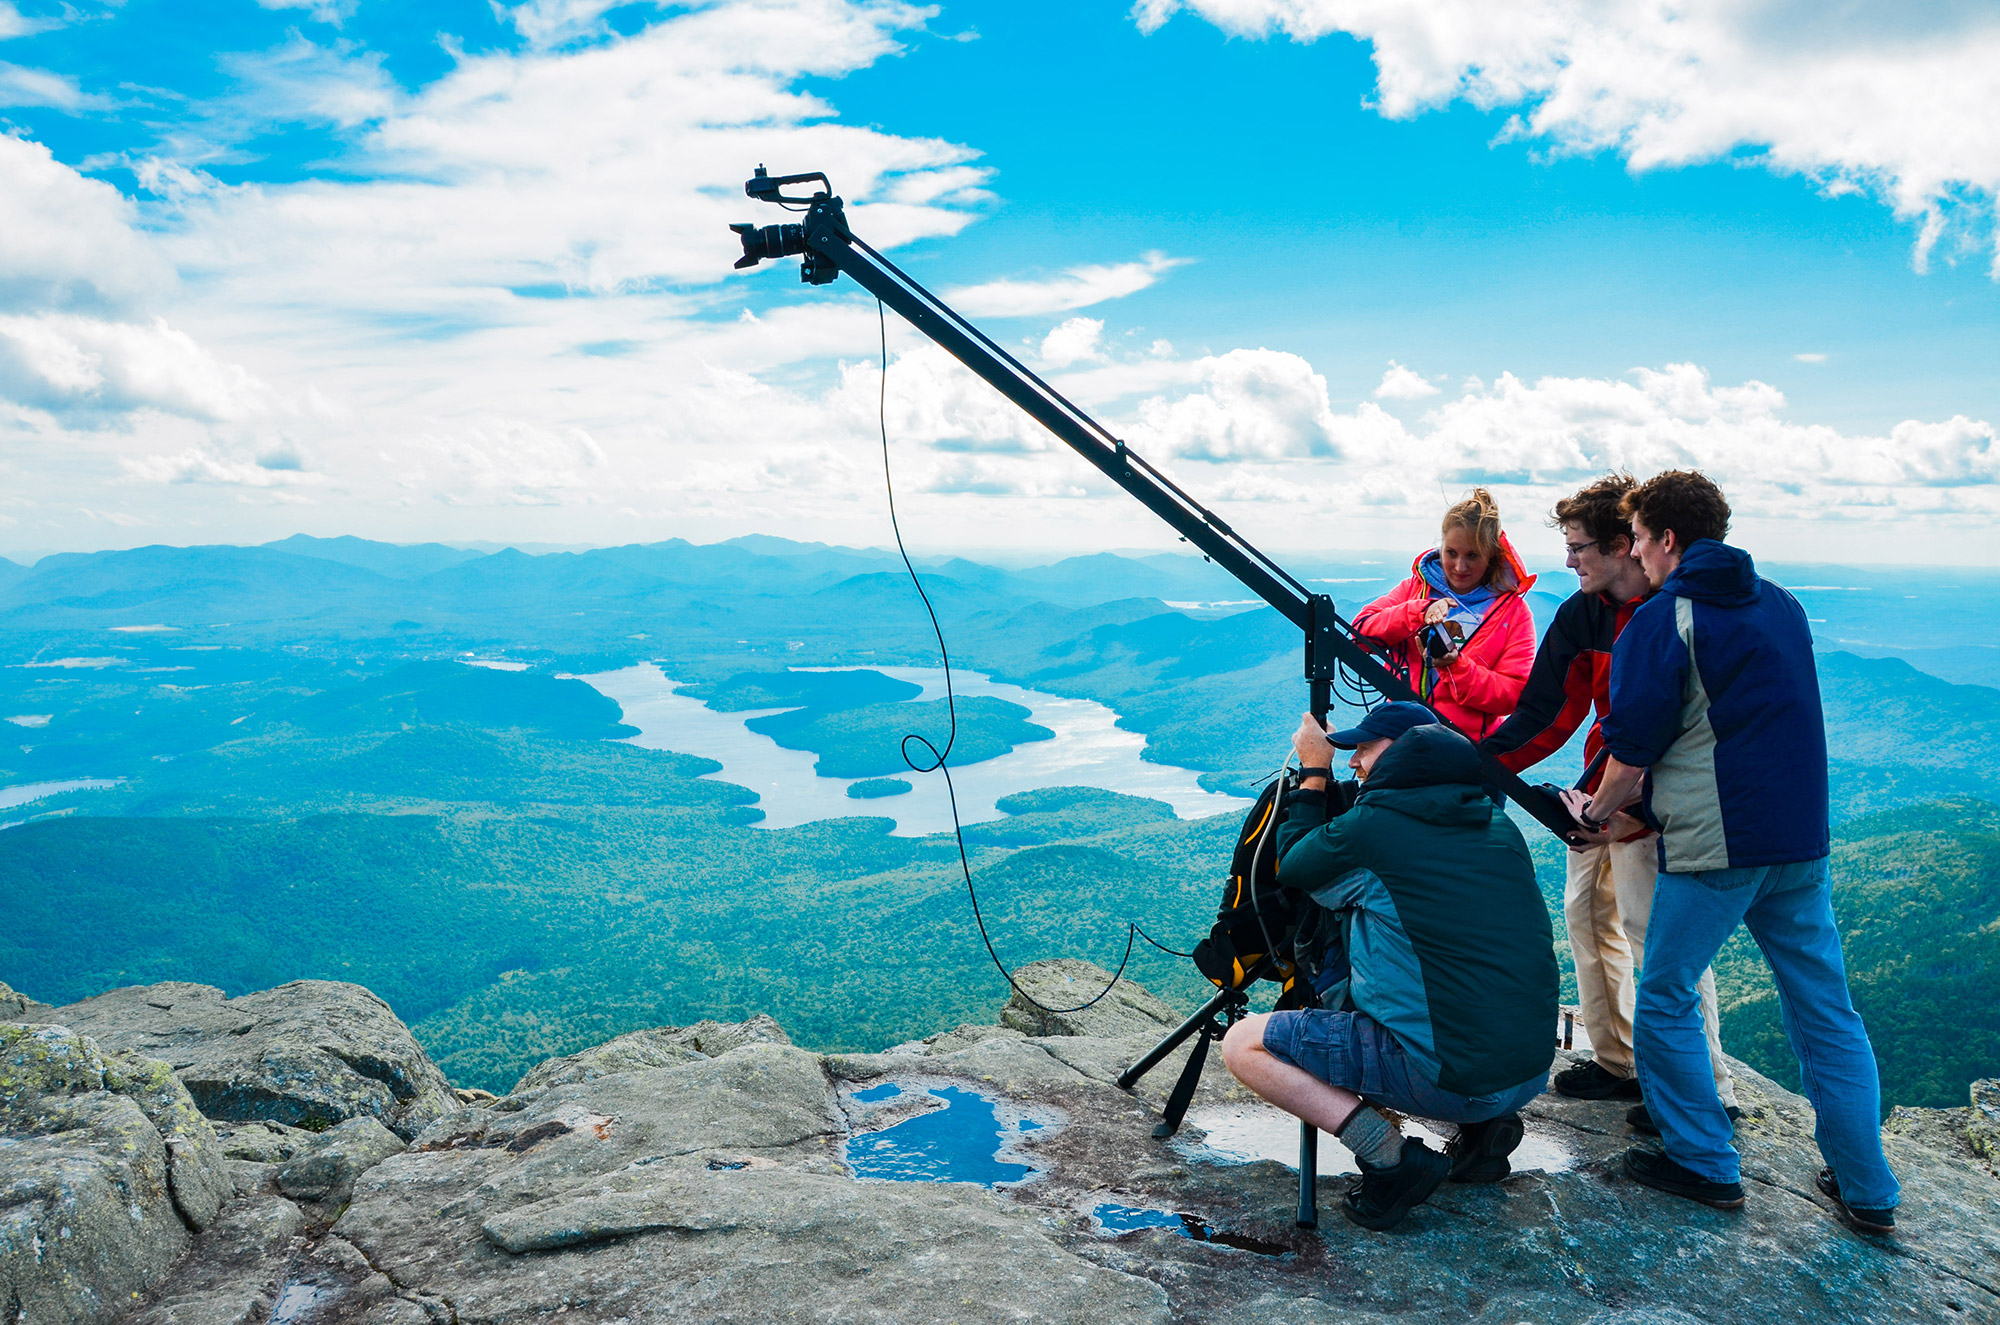 Blake and the team using a boom to film on Whiteface. | Courtesy: Blake Cortright